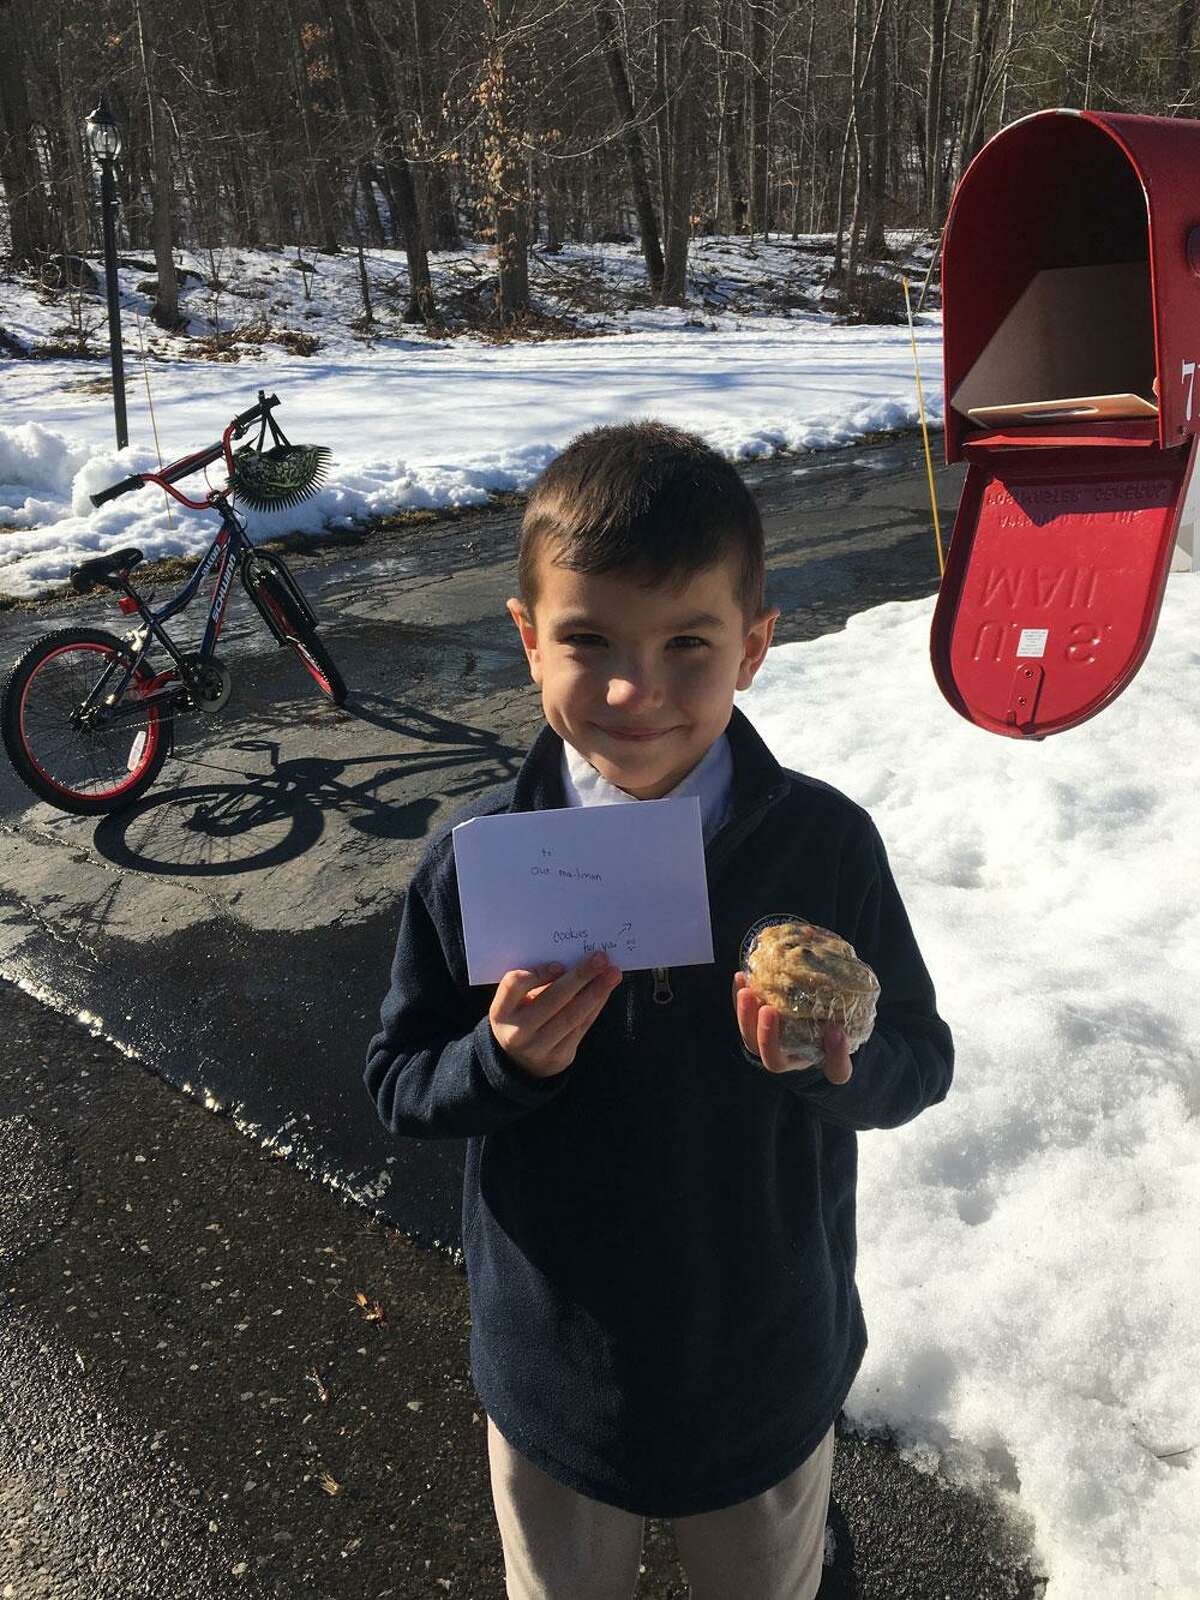 Third grade student and St. Catherine of Siena parishioner Sammy loves it when he gets presents in the mail. He made cookies to surprise his mailman.